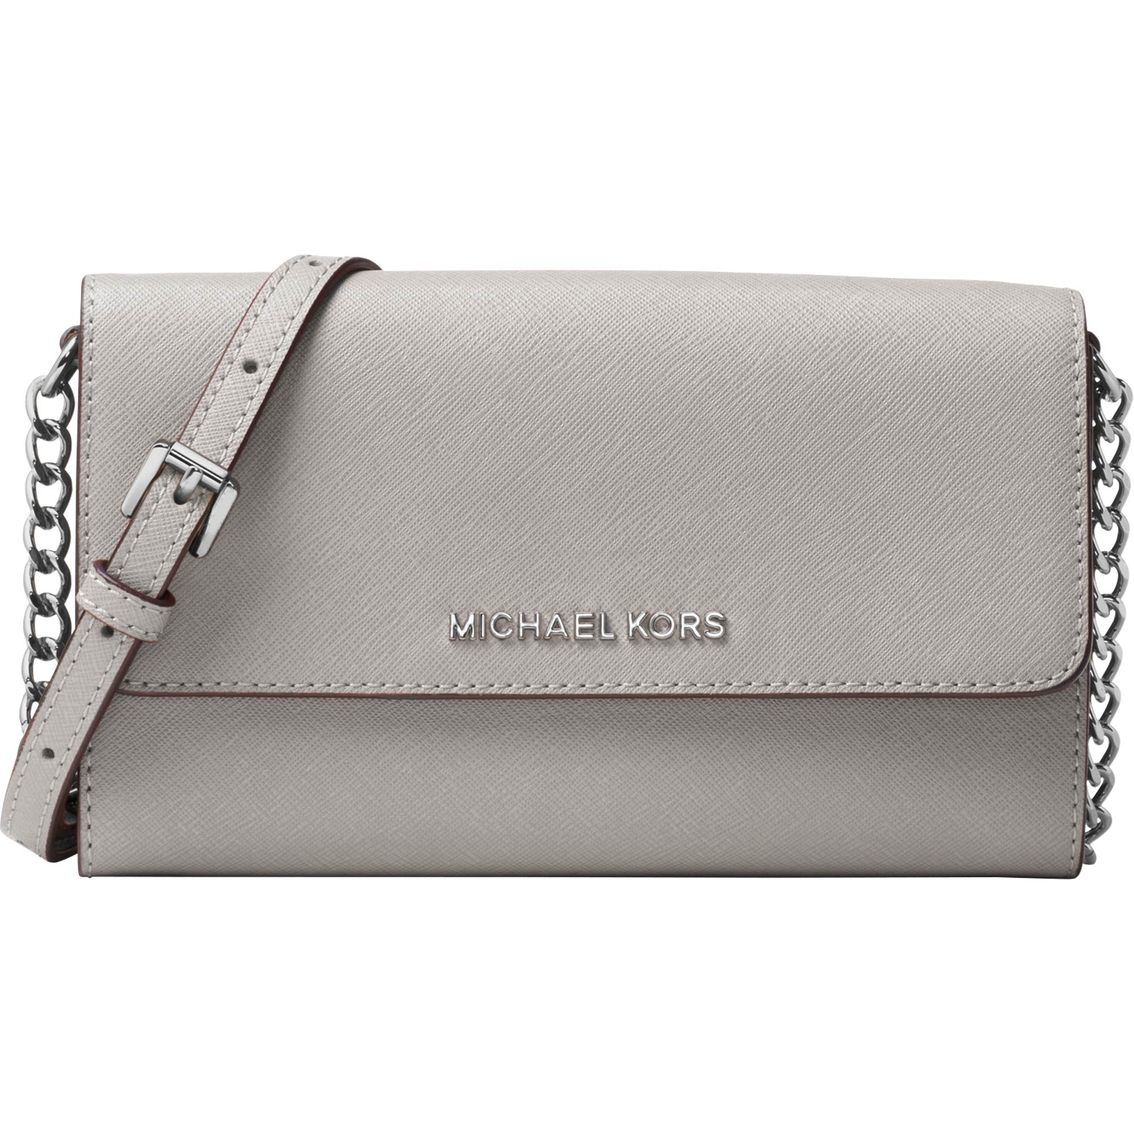 614c74bc702d48 Michael Kors Jet Set Travel Large Phone Crossbody | Handbags | Shop ...